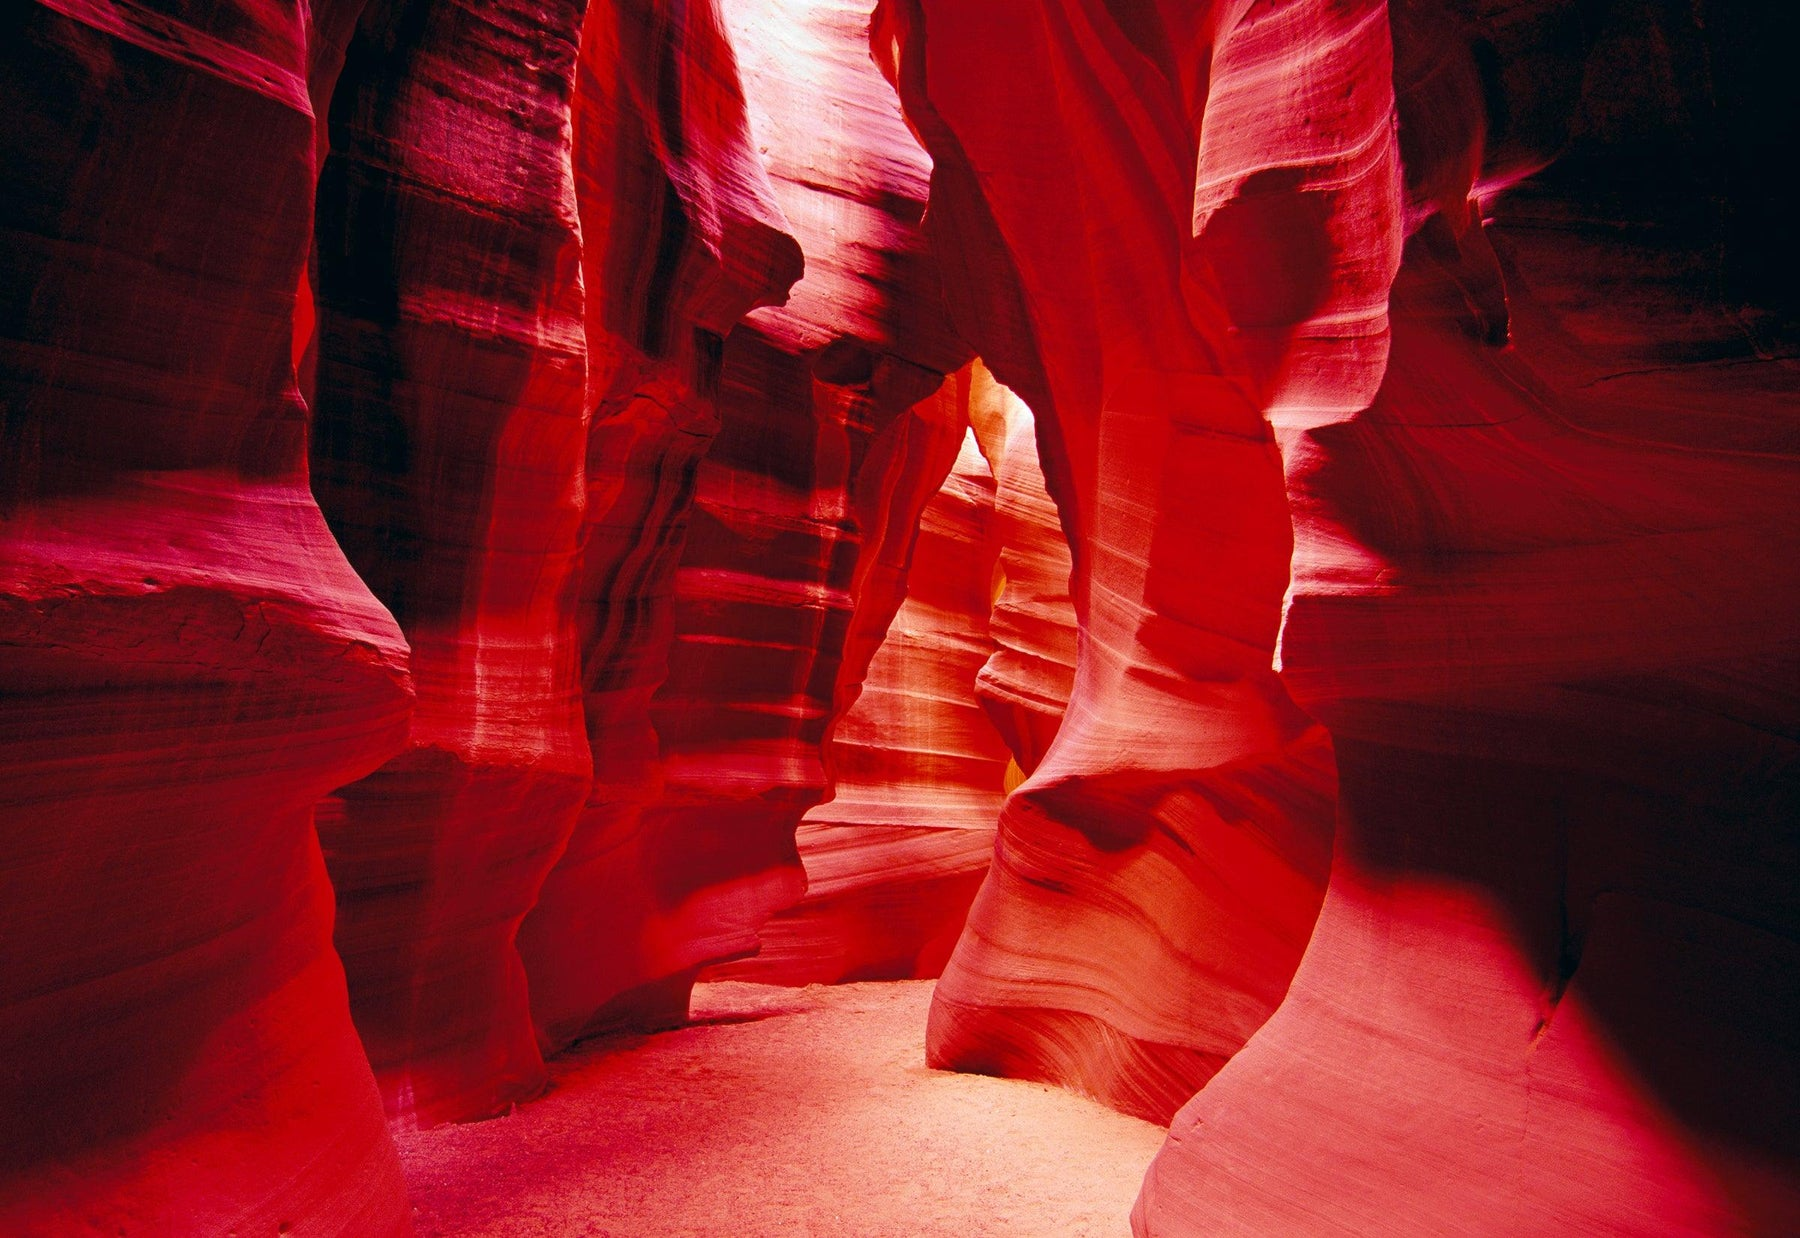 Sand walkway inside the red sandstone slot canyons of Antelope Canyon Arizona